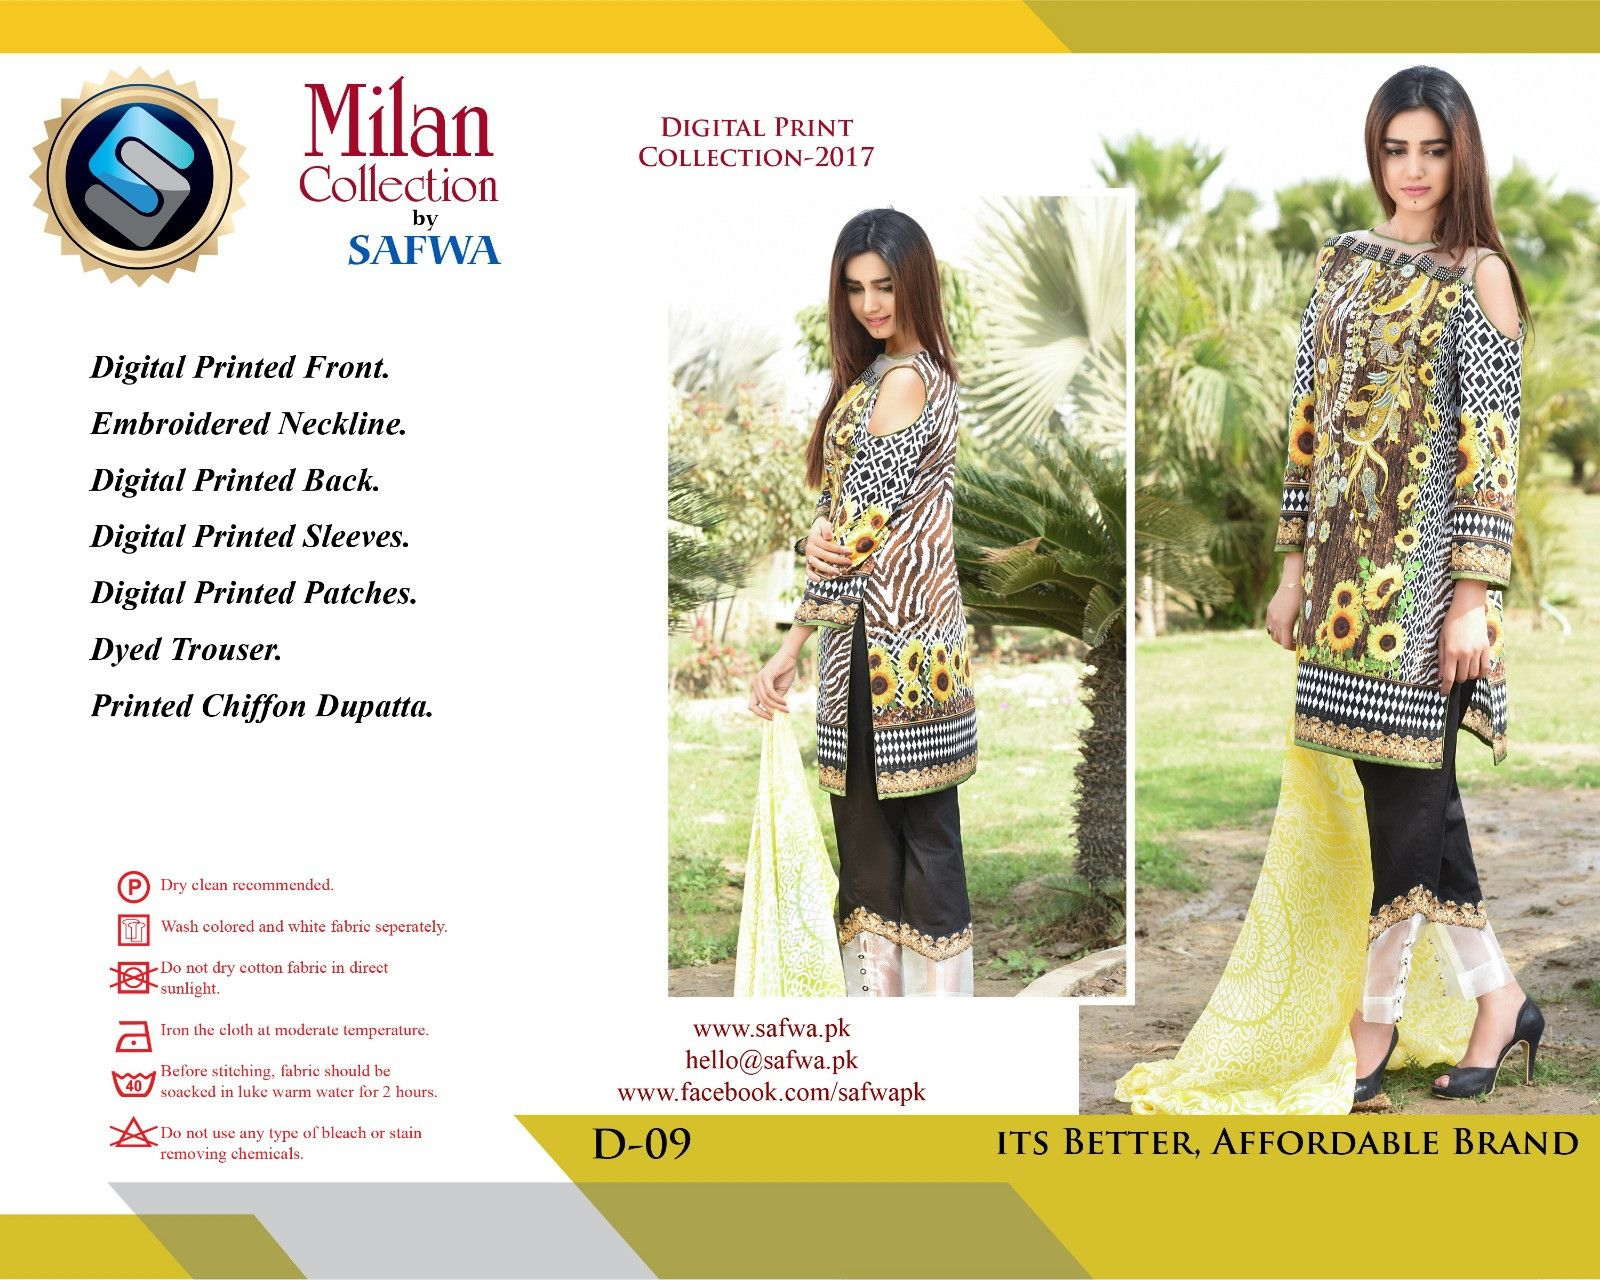 D-09 - safwa digital - milan collection - embroidered - 3 piece suit ...